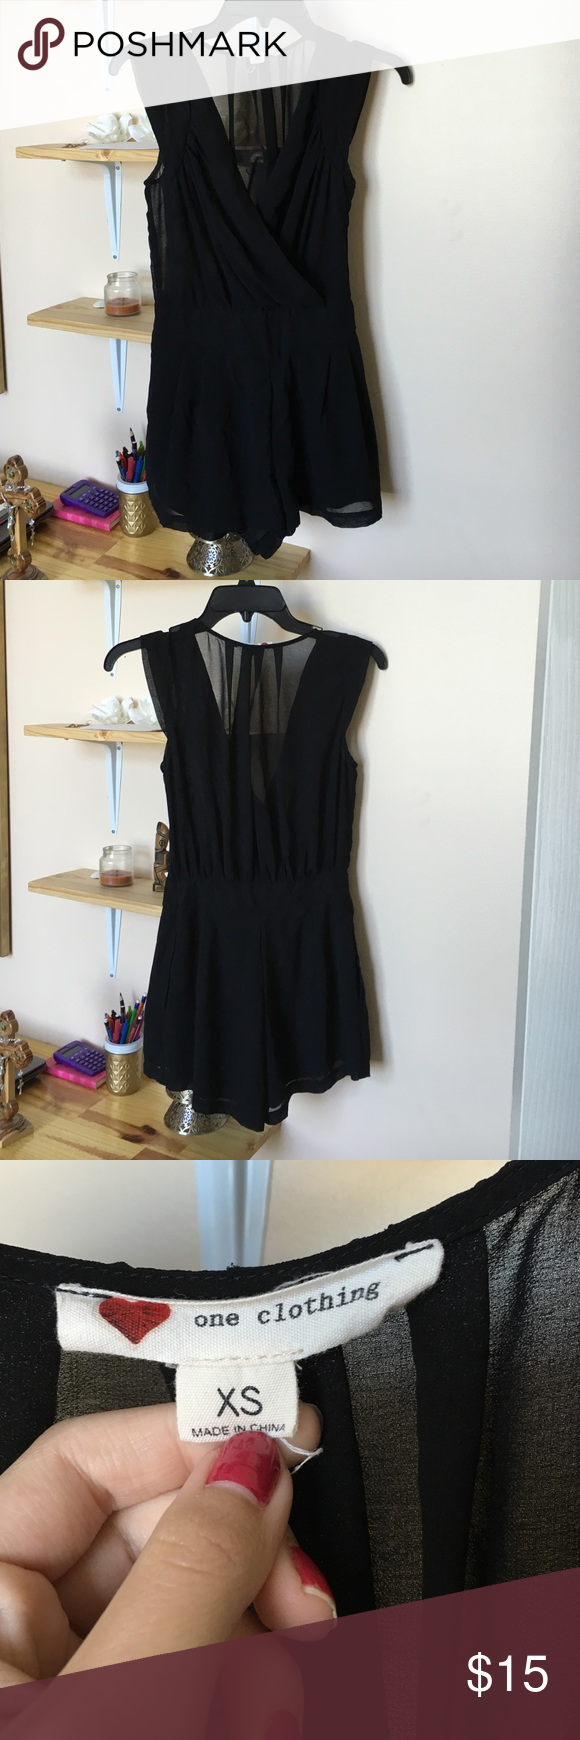 80c9696b36a One Clothing romper One Clothing black romper. Only worn a few times one  clothing Pants Jumpsuits   Rompers